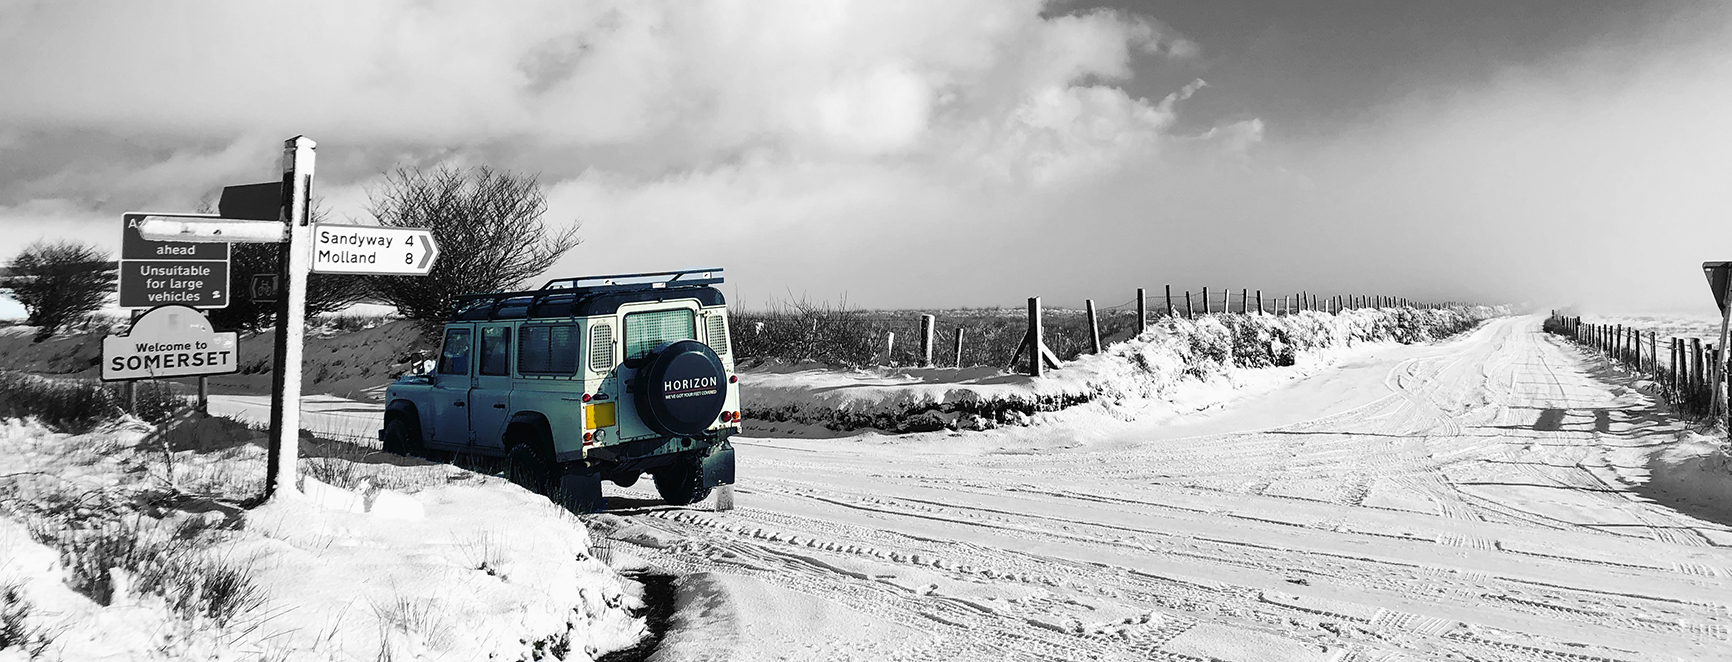 Land Rover Defender - Horizon - Snow - Somerset